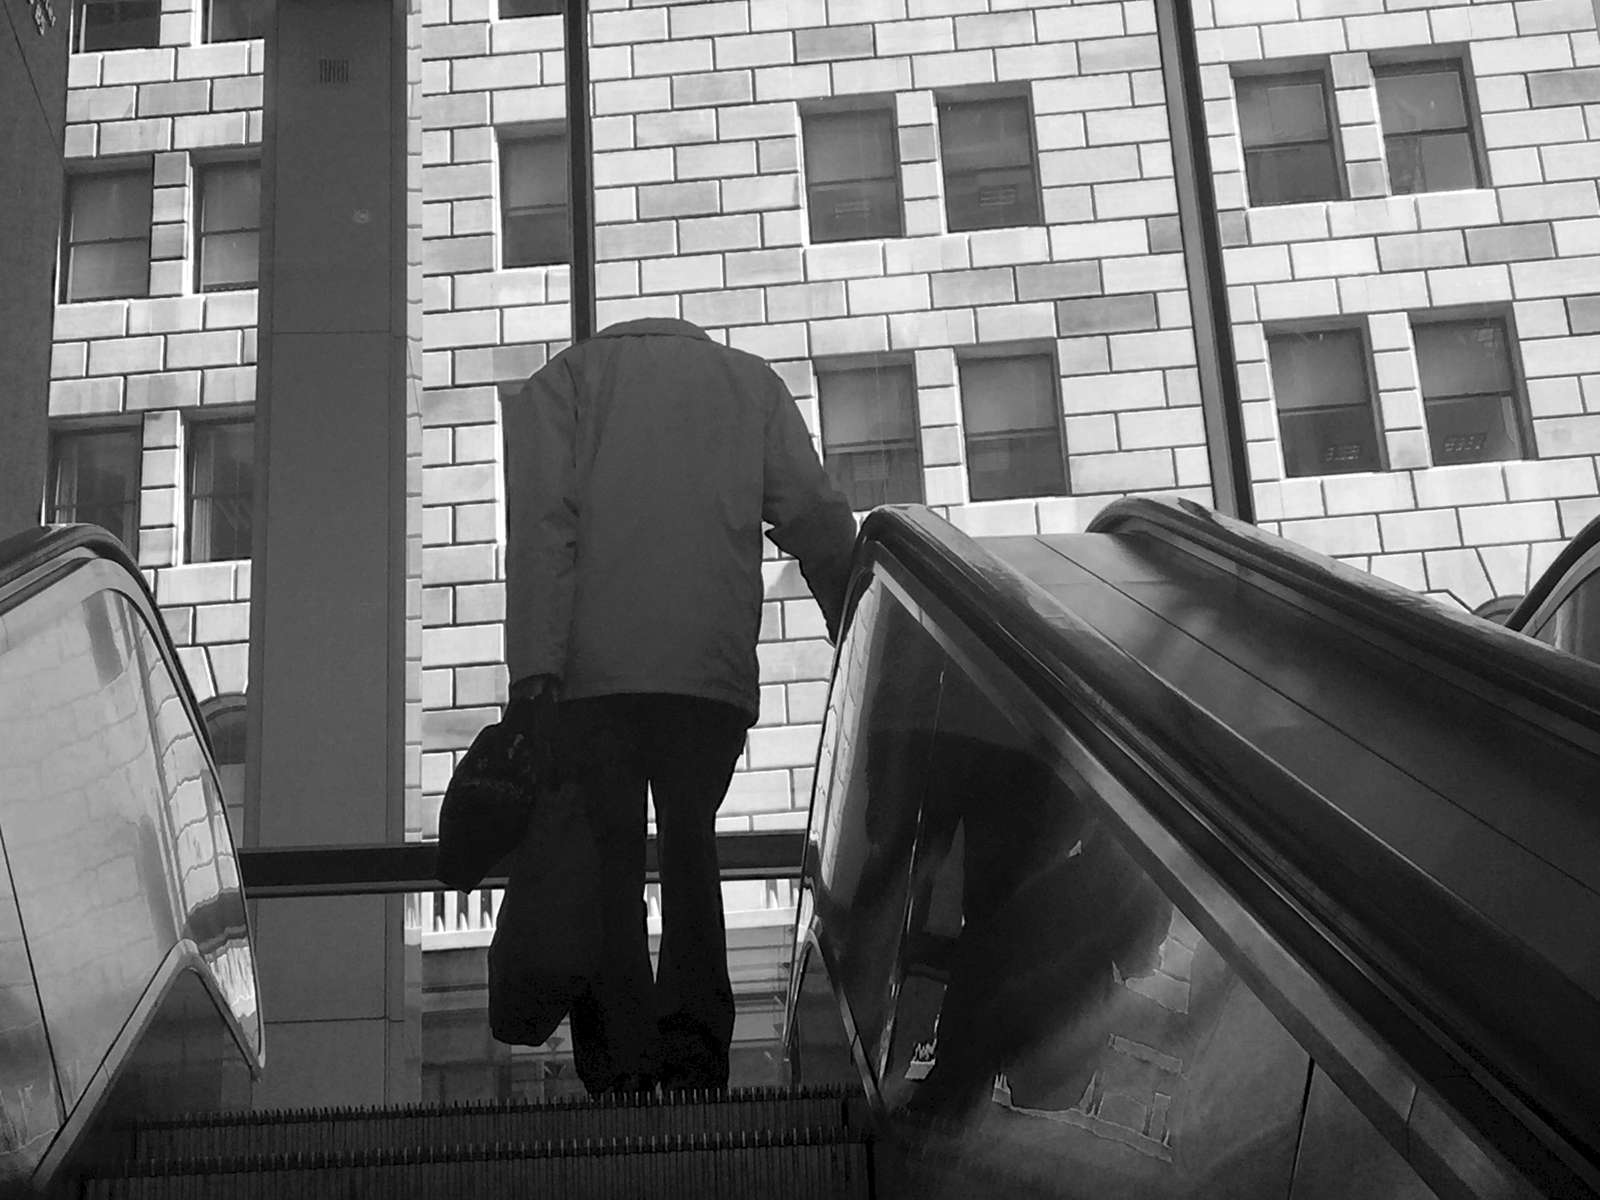 Escalator - NYC